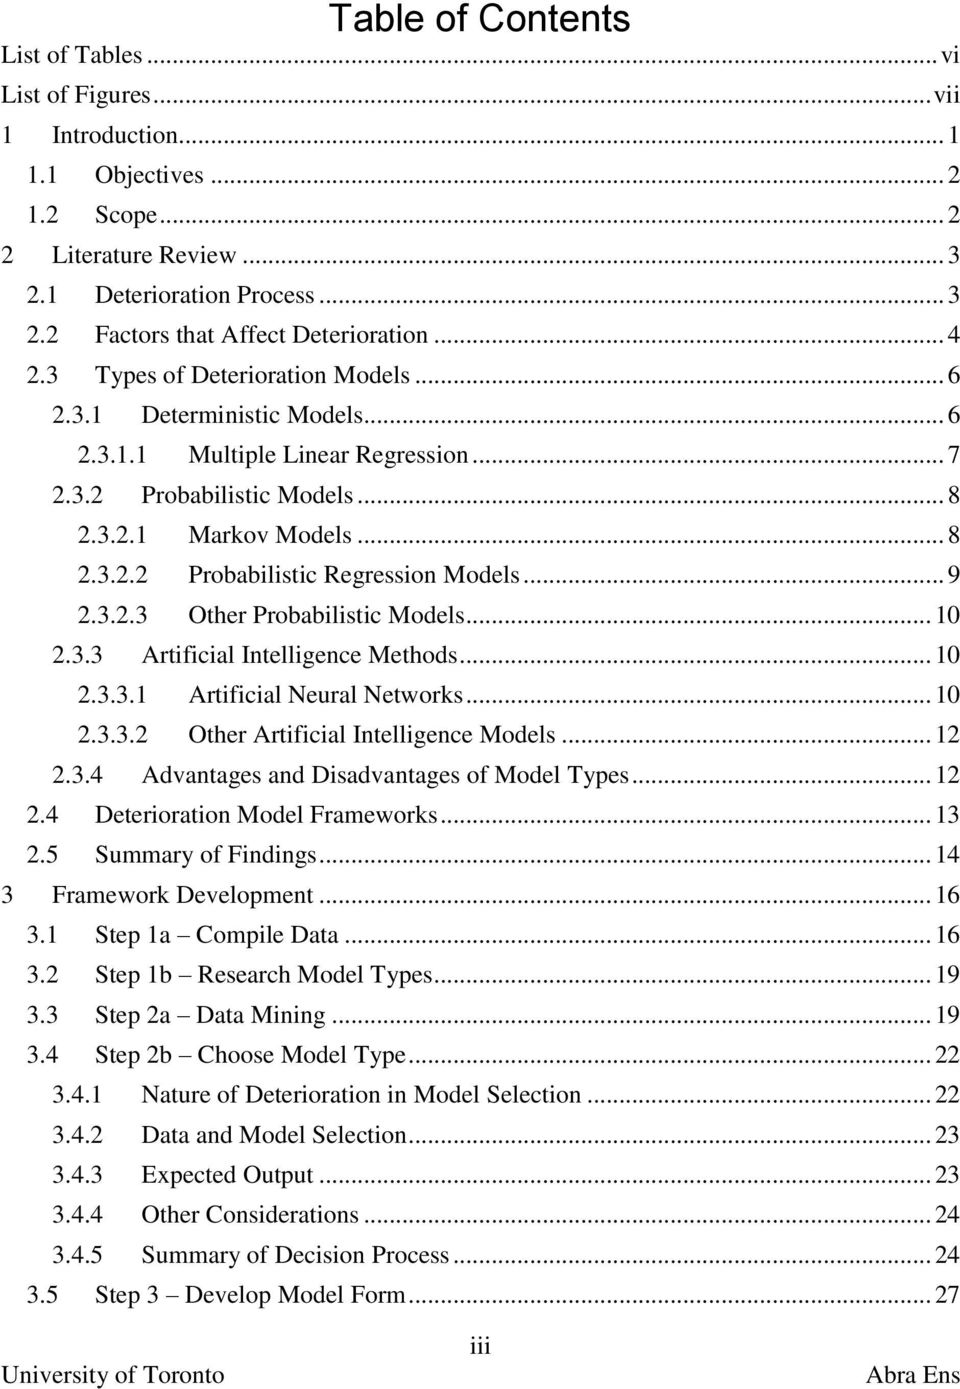 .. 9 2.3.2.3 Other Probabilistic Models... 10 2.3.3 Artificial Intelligence Methods... 10 2.3.3.1 Artificial Neural Networks... 10 2.3.3.2 Other Artificial Intelligence Models... 12 2.3.4 Advantages and Disadvantages of Model Types.